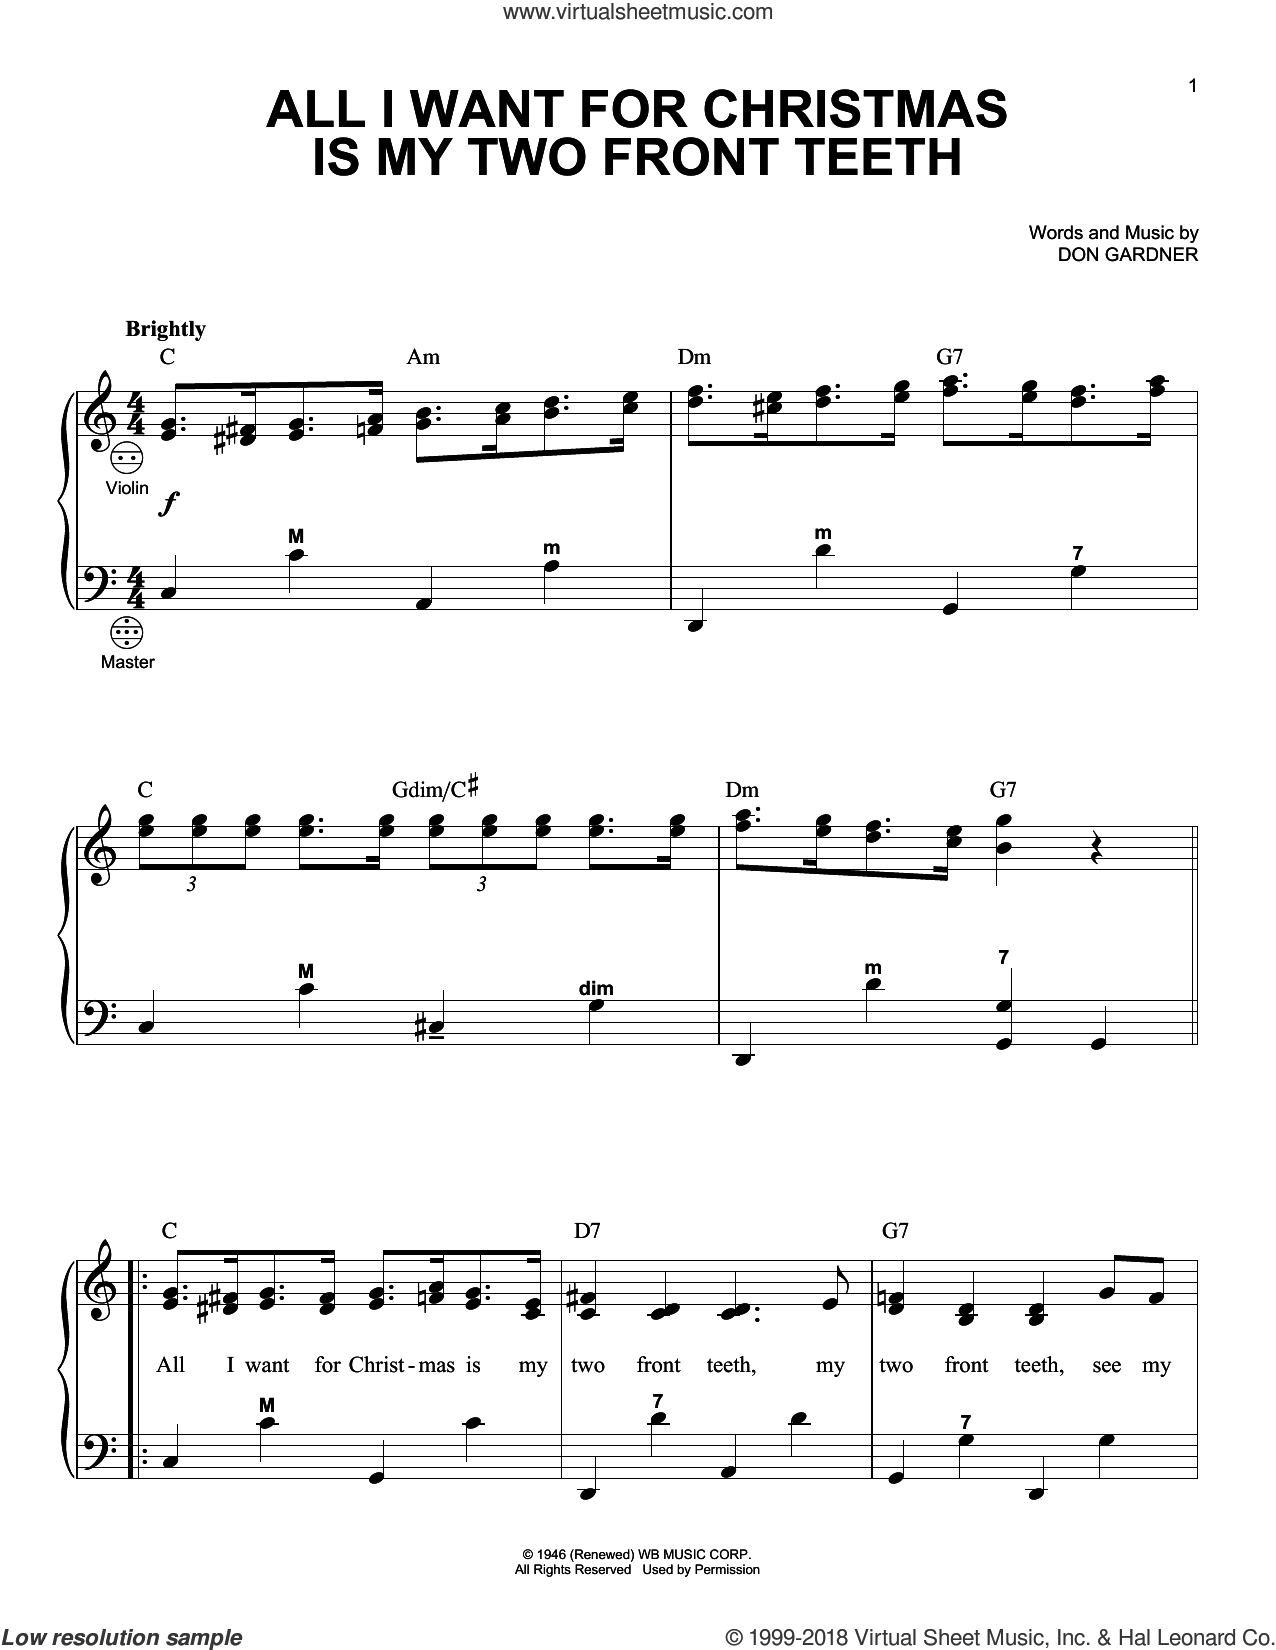 All I Want For Christmas Is My Two Front Teeth sheet music for accordion by Don Gardner, Gary Meisner and Spike Jones & The City Slickers, intermediate skill level